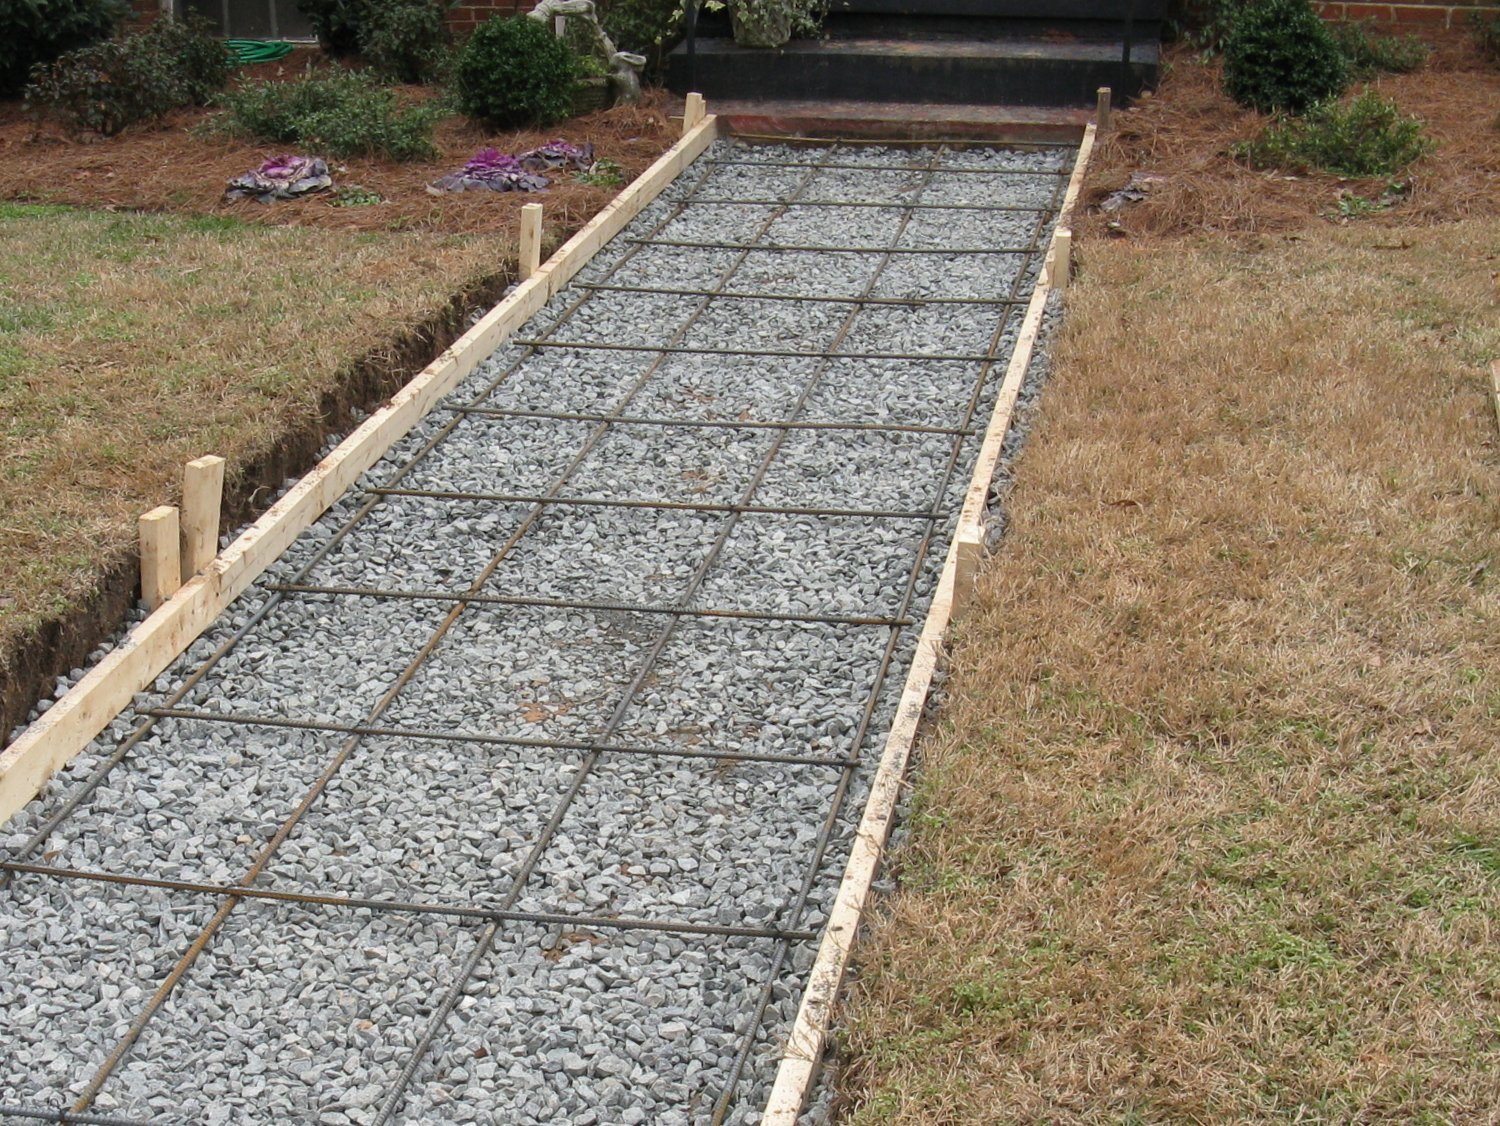 Steel reinforcement in a walkway footing